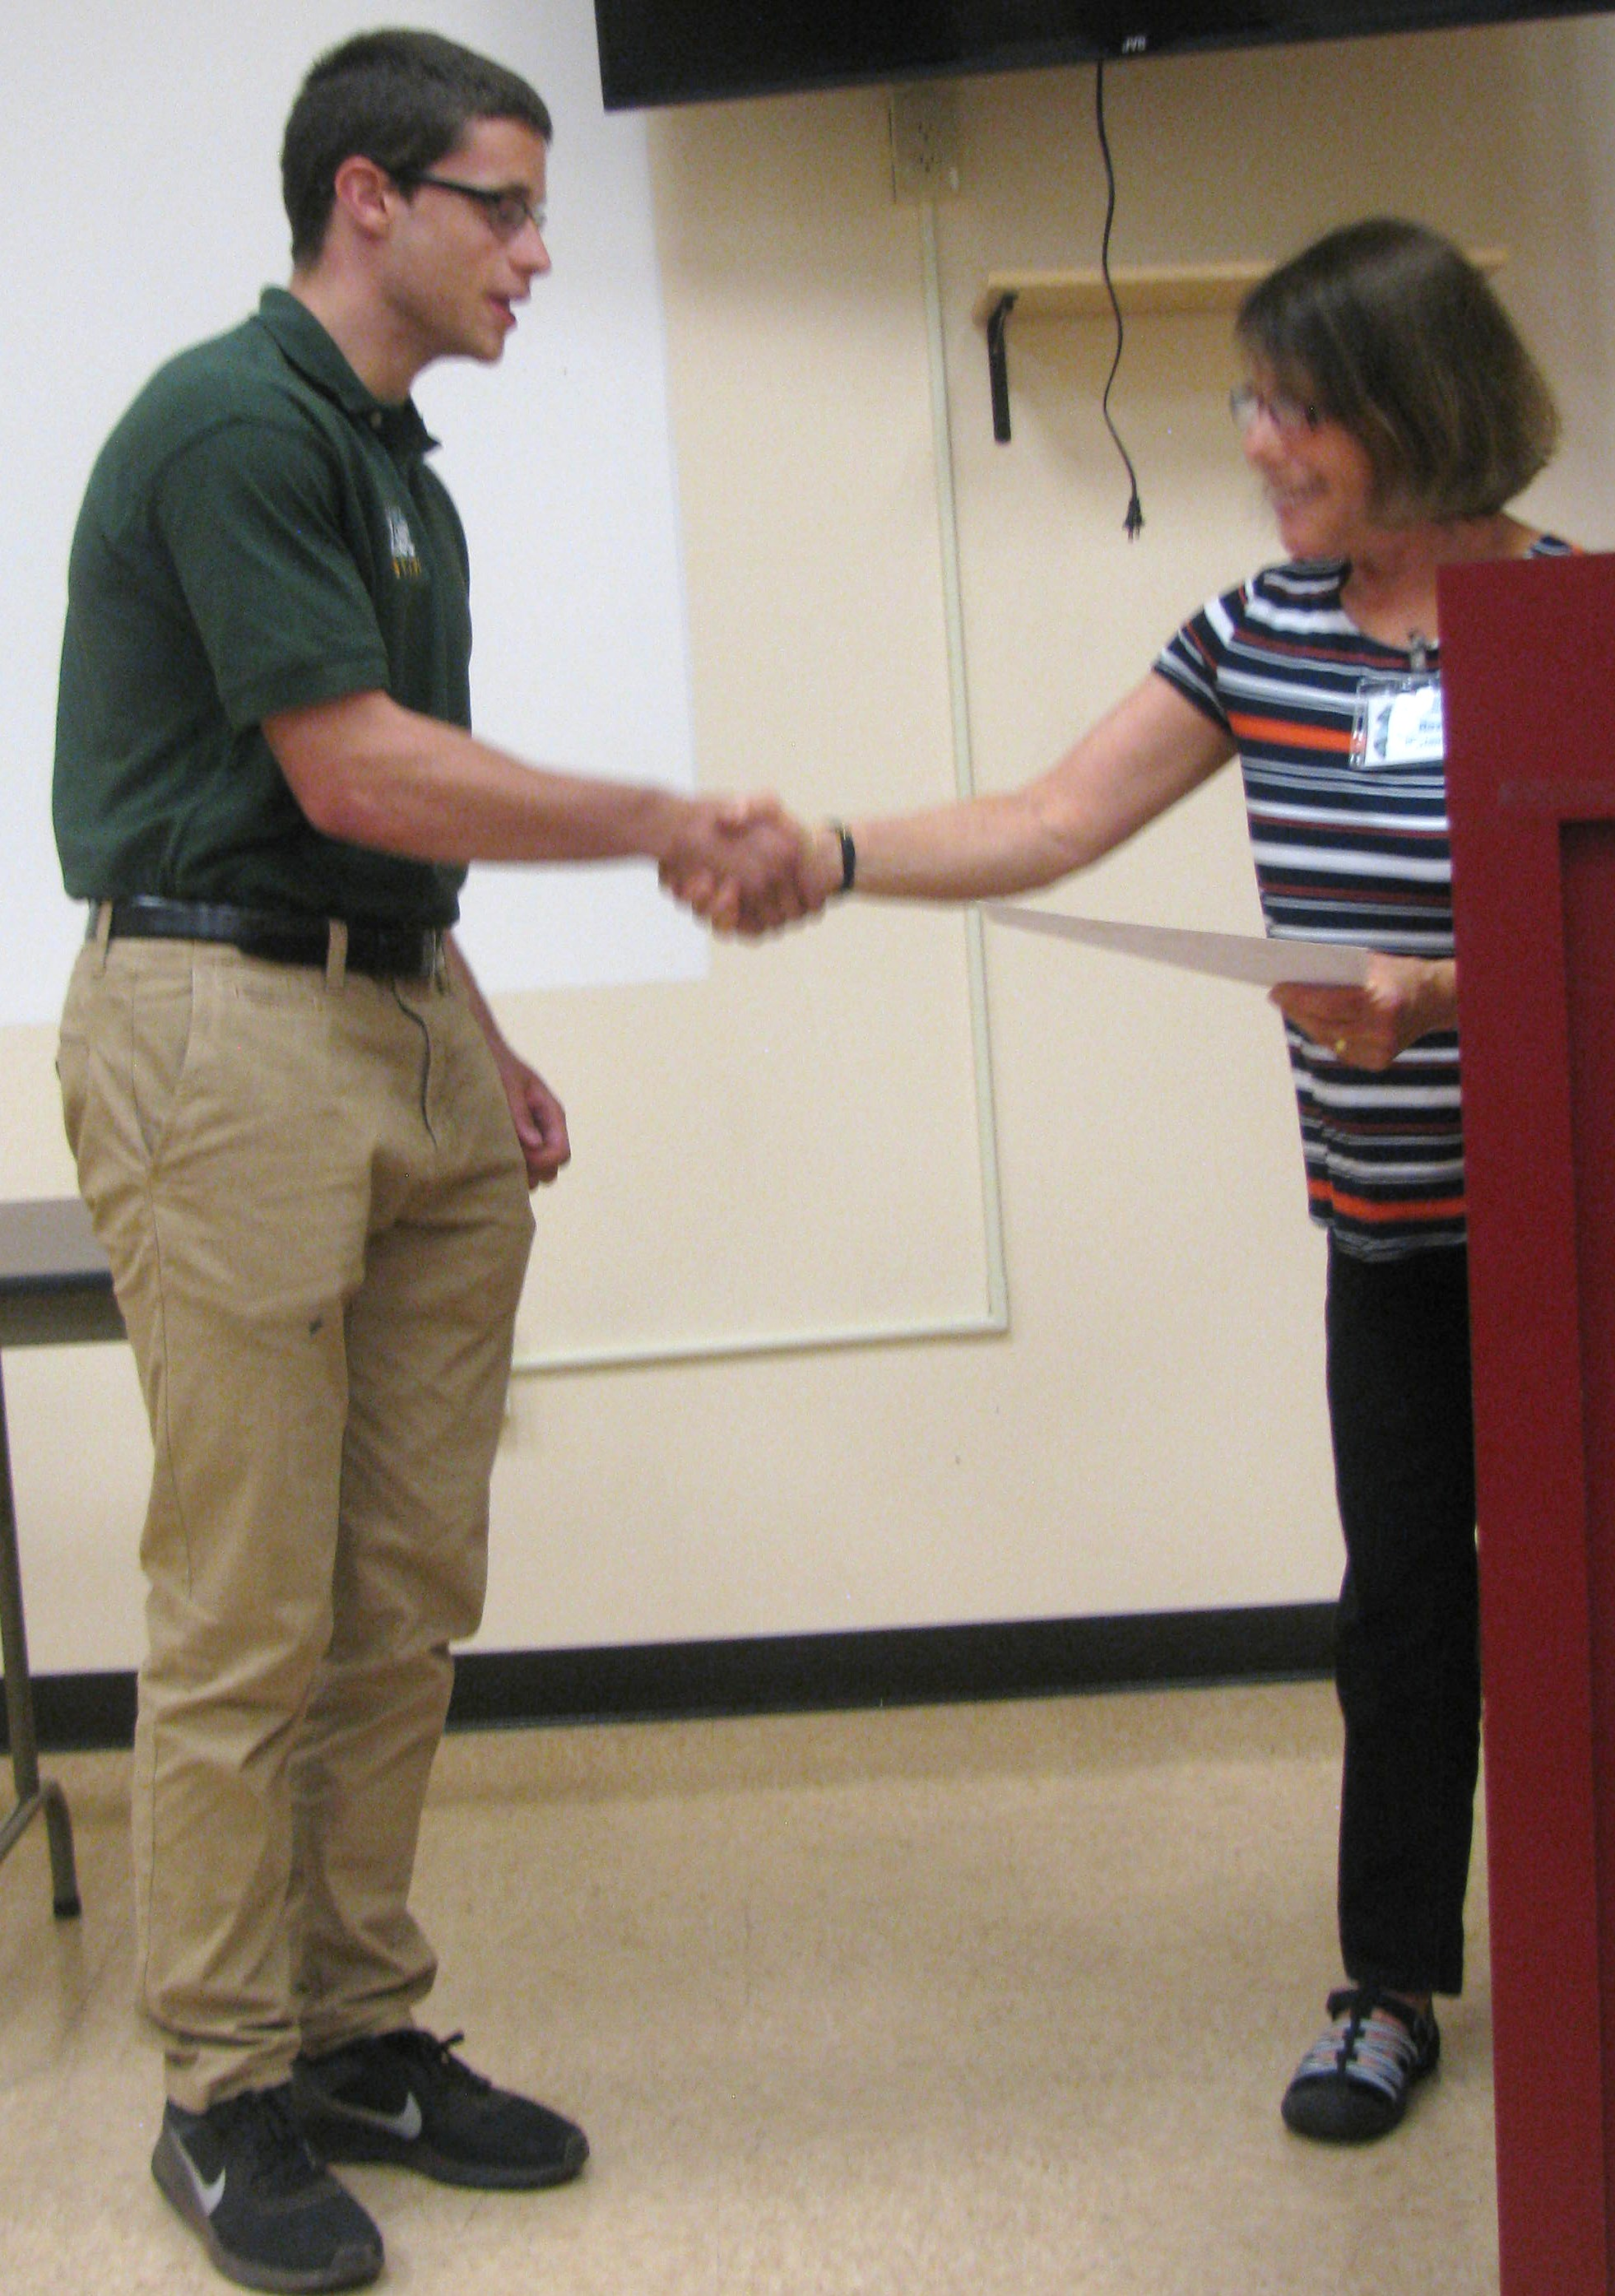 Alexander Melchiore receives the James F. Akers Memorial Conservation Scholarship from AAS member Roz Herlands. Photo credit: Charles Herlands